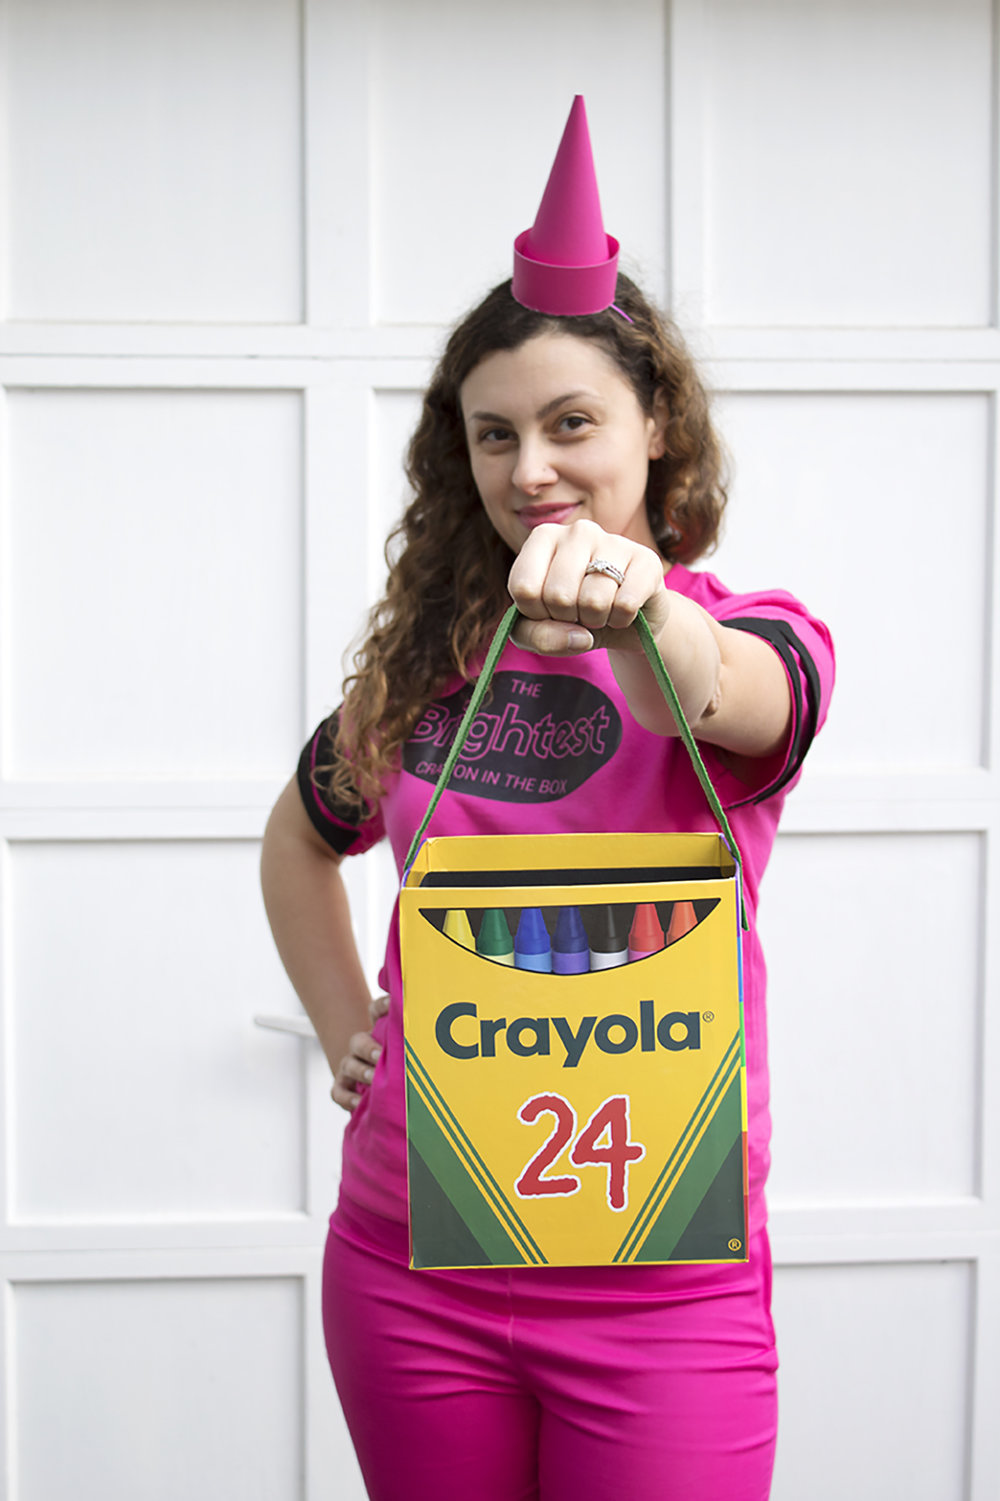 Why be an ordinary crayon when you can be the BRIGHTEST crayon in the box?! Check out this DIY costume project, and download the free printable so that you can be the brightest crayon too! Click for the full DIY.